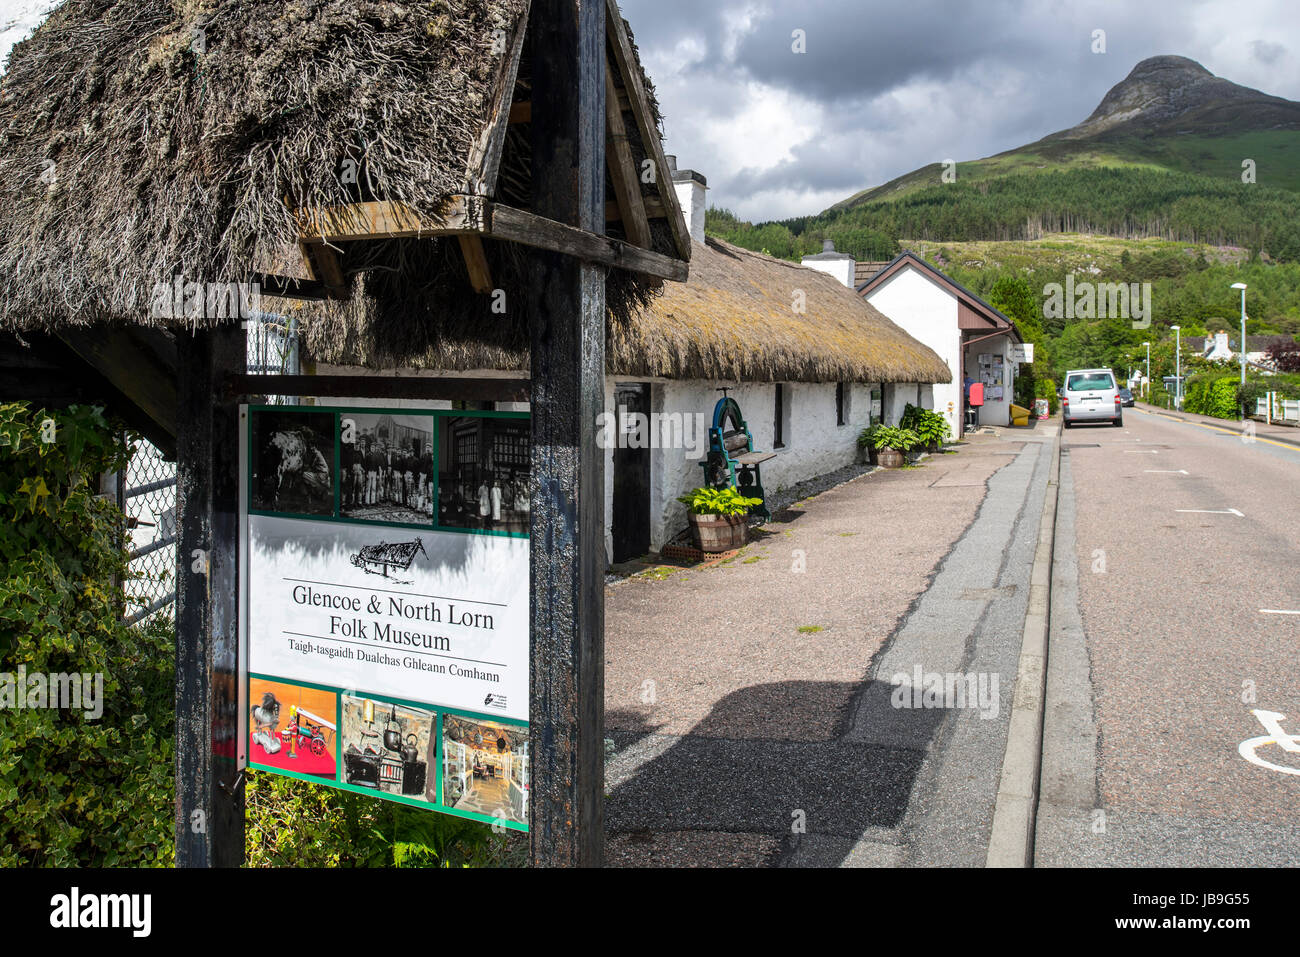 Glencoe & North Lorn Folk Museum in restored cottage with thatched roof, Lochaber, Scottish Highlands, Scotland, - Stock Image